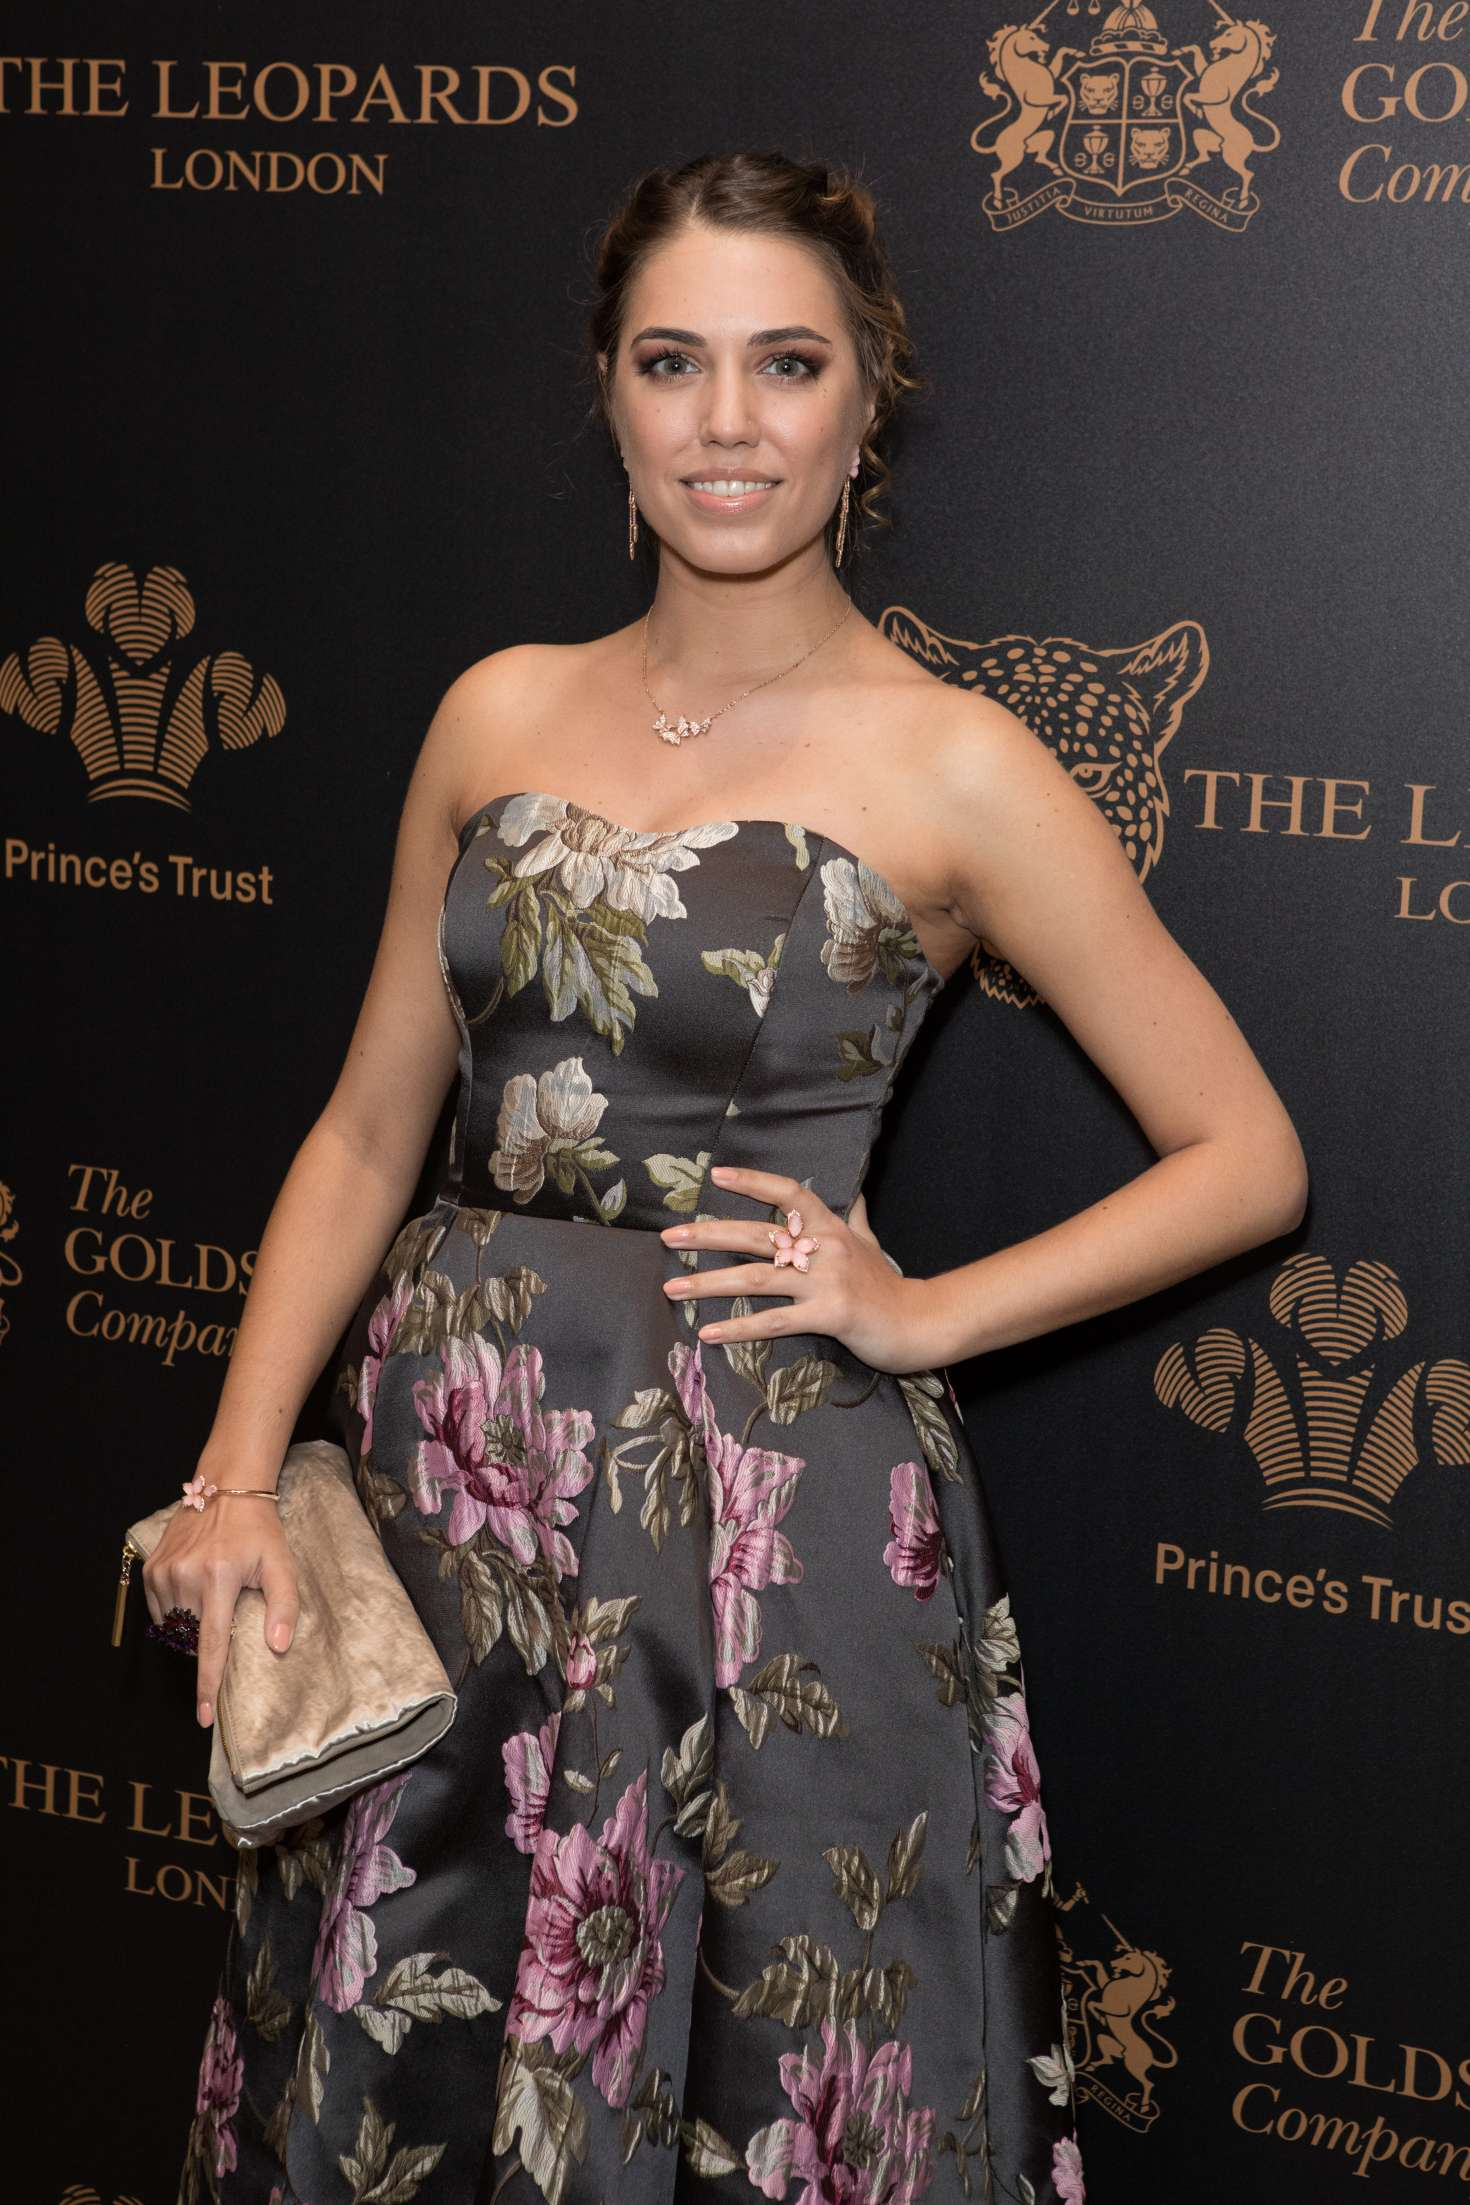 Amber Le Bon - 'The Leopards' Awards in aid of The Prince's Trust Goldsmiths Hall in London